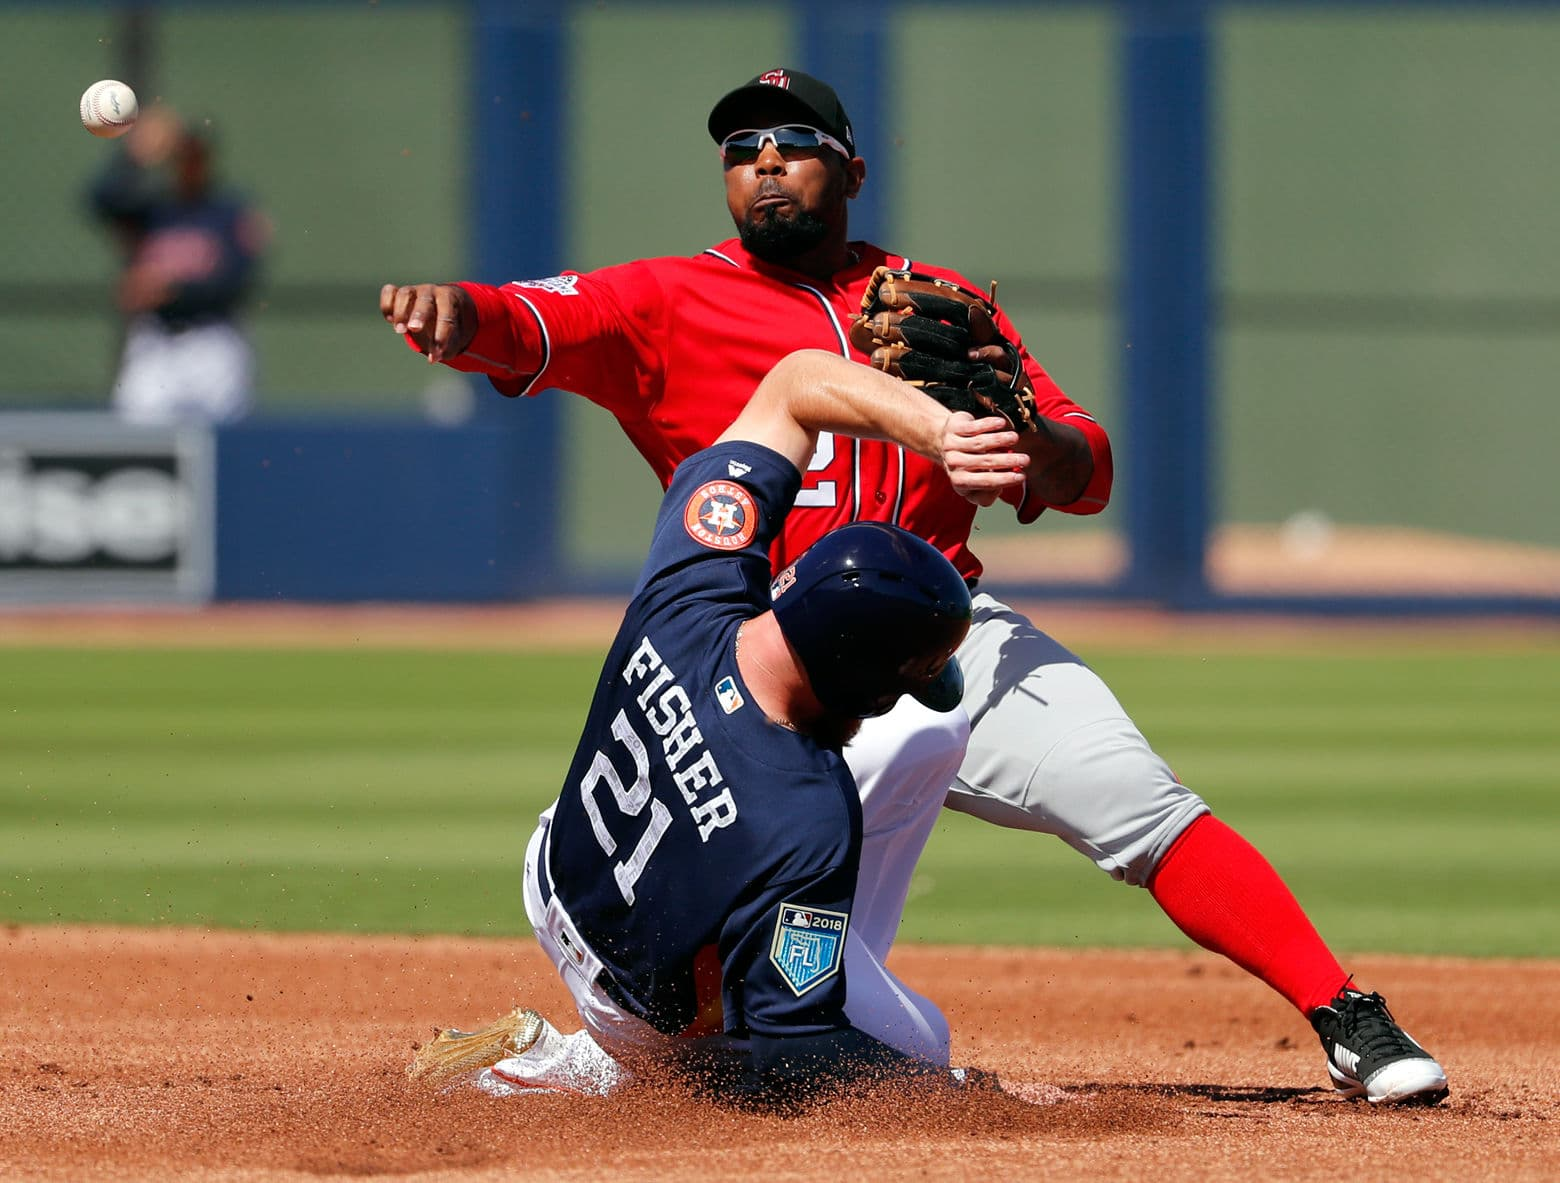 Houston Astros' Derek Fisher (21) is out at second as Washington Nationals second baseman Howie Kendrick turns the double play to end the first inning of an exhibition spring baseball game Friday.  (AP Photo/Jeff Roberson)